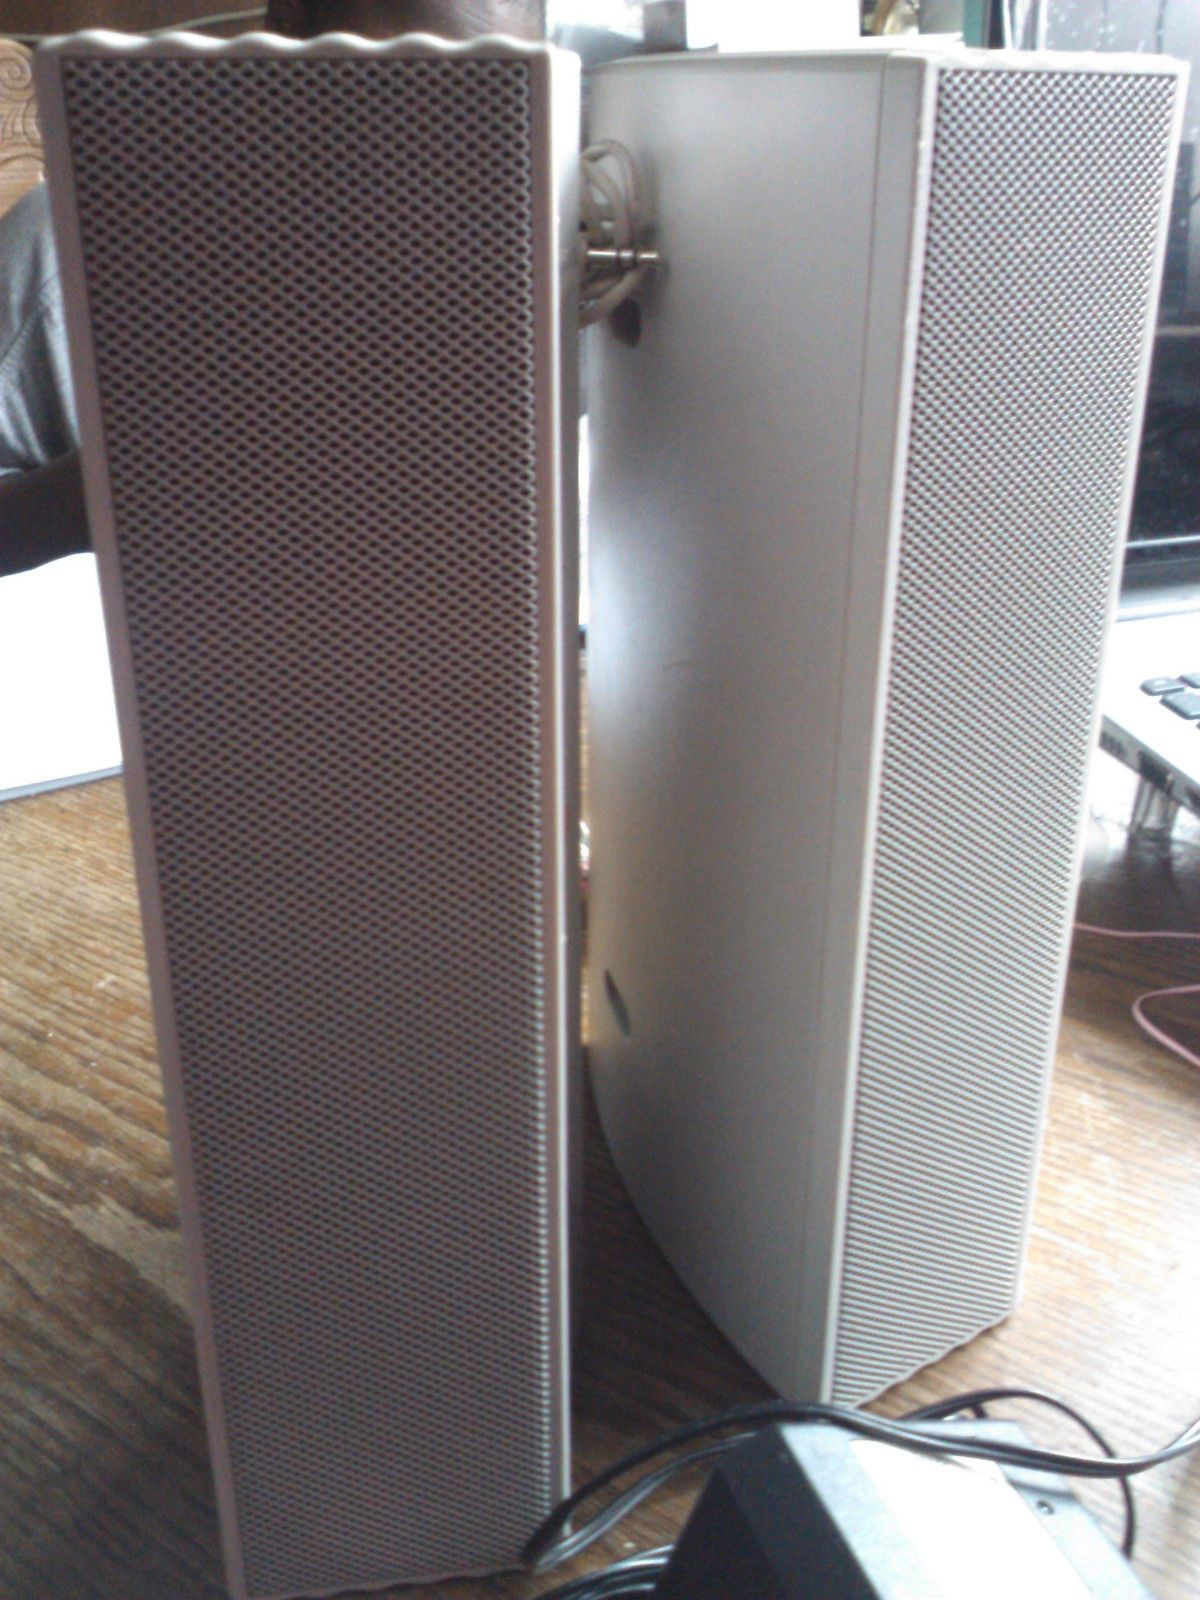 2pc packard bell 168120 pc 10 39 39 h x 6 39 39 w speakers for sale item 1459693. Black Bedroom Furniture Sets. Home Design Ideas